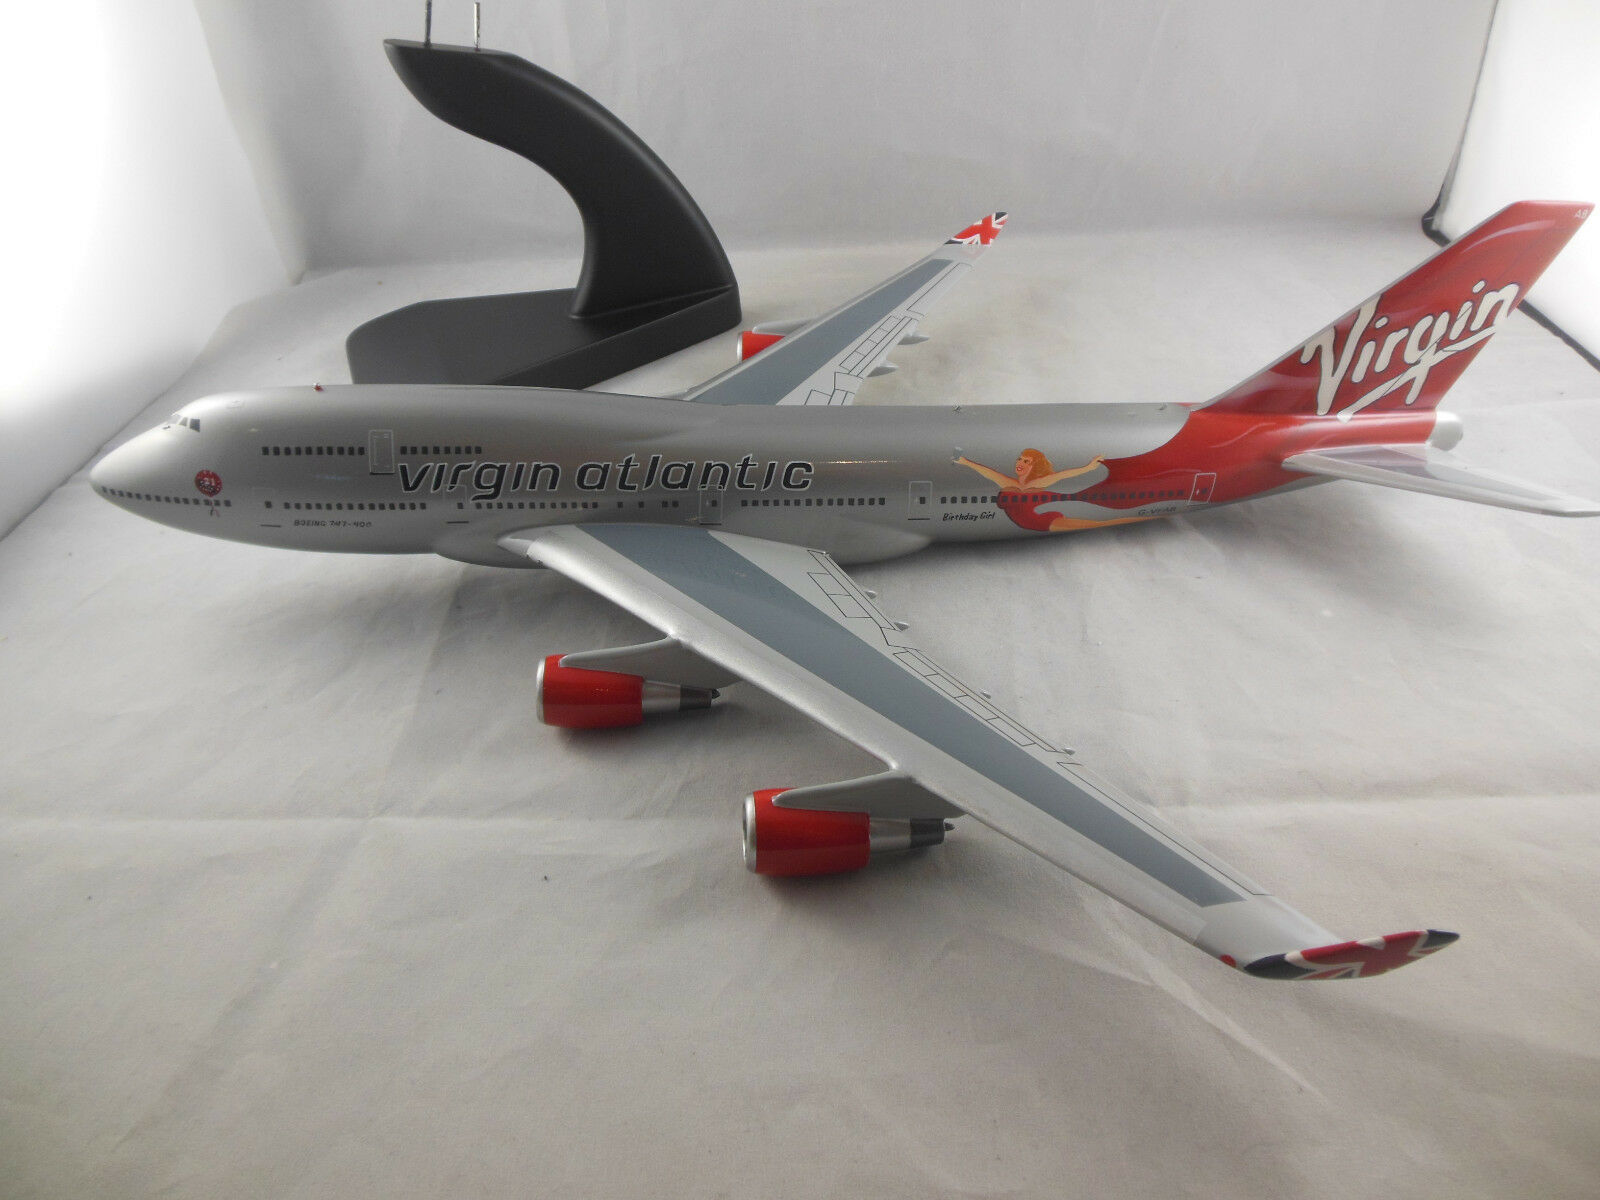 Bravo Delta Models No.142 Virgin Atlantic Boeing 747-400 Birthday Girl